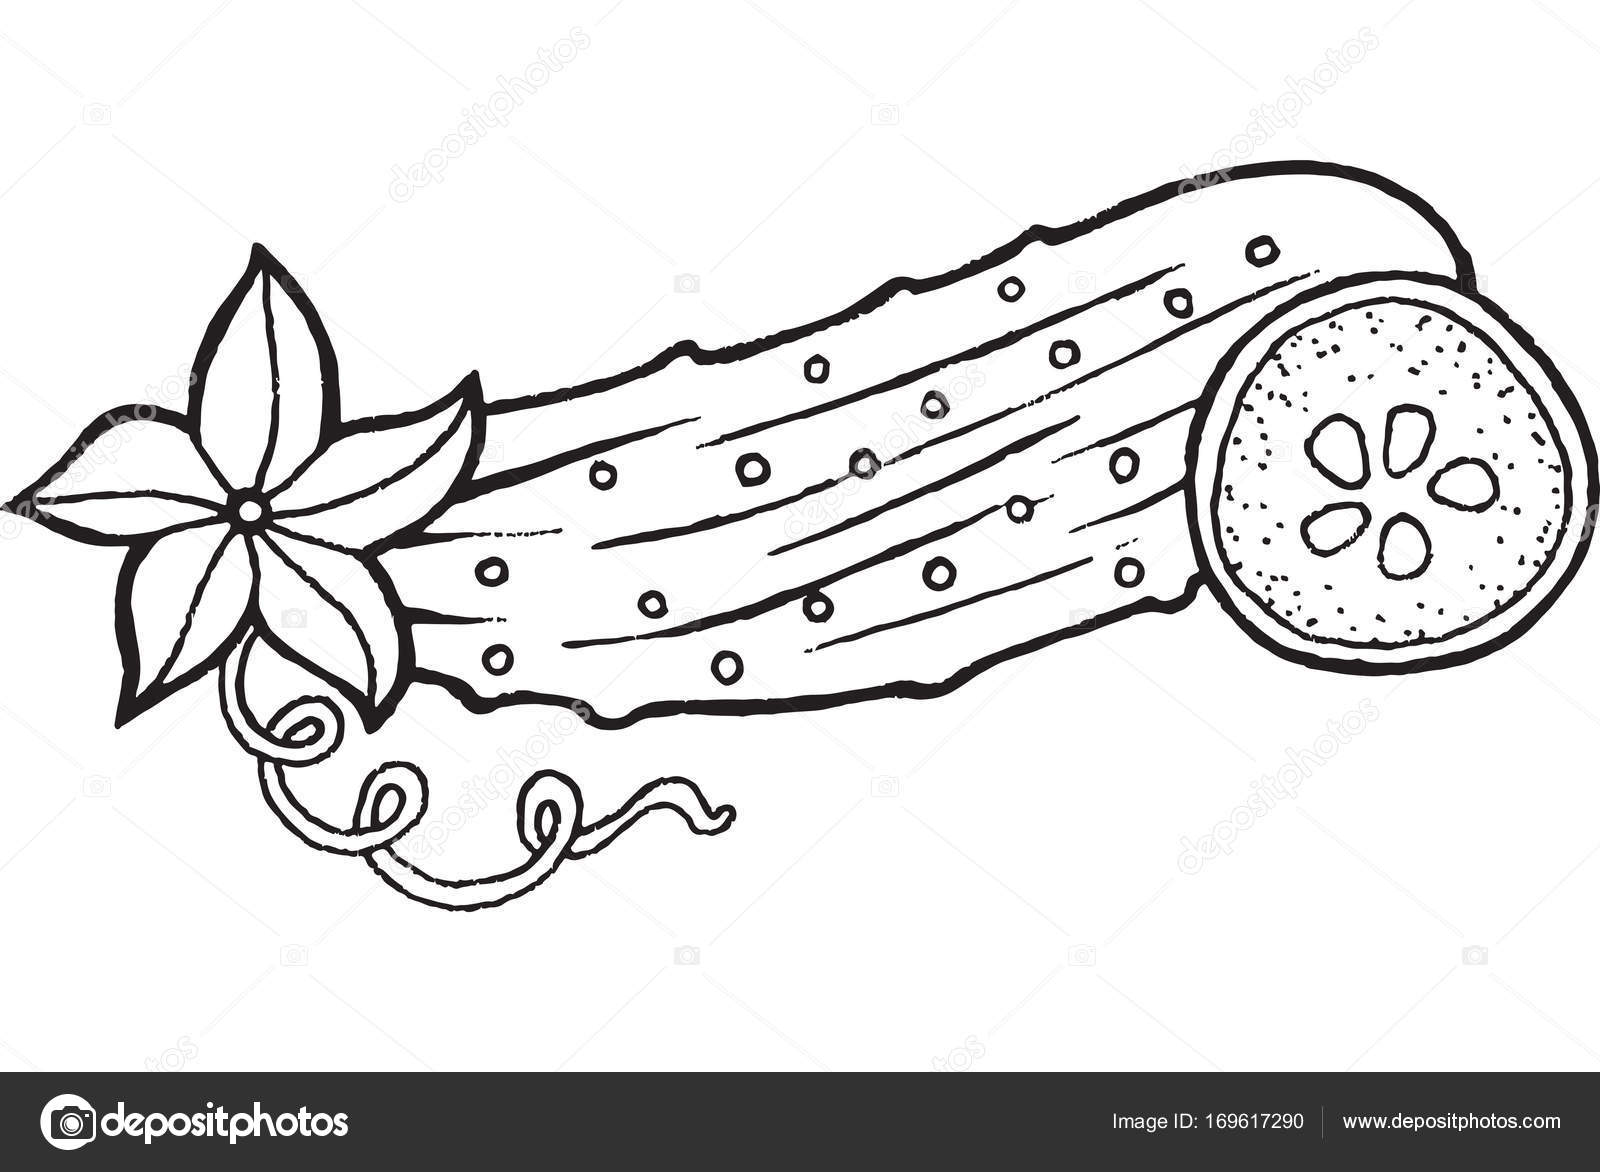 Cucumber coloring page hand drawn illustration — Stock Vector ...